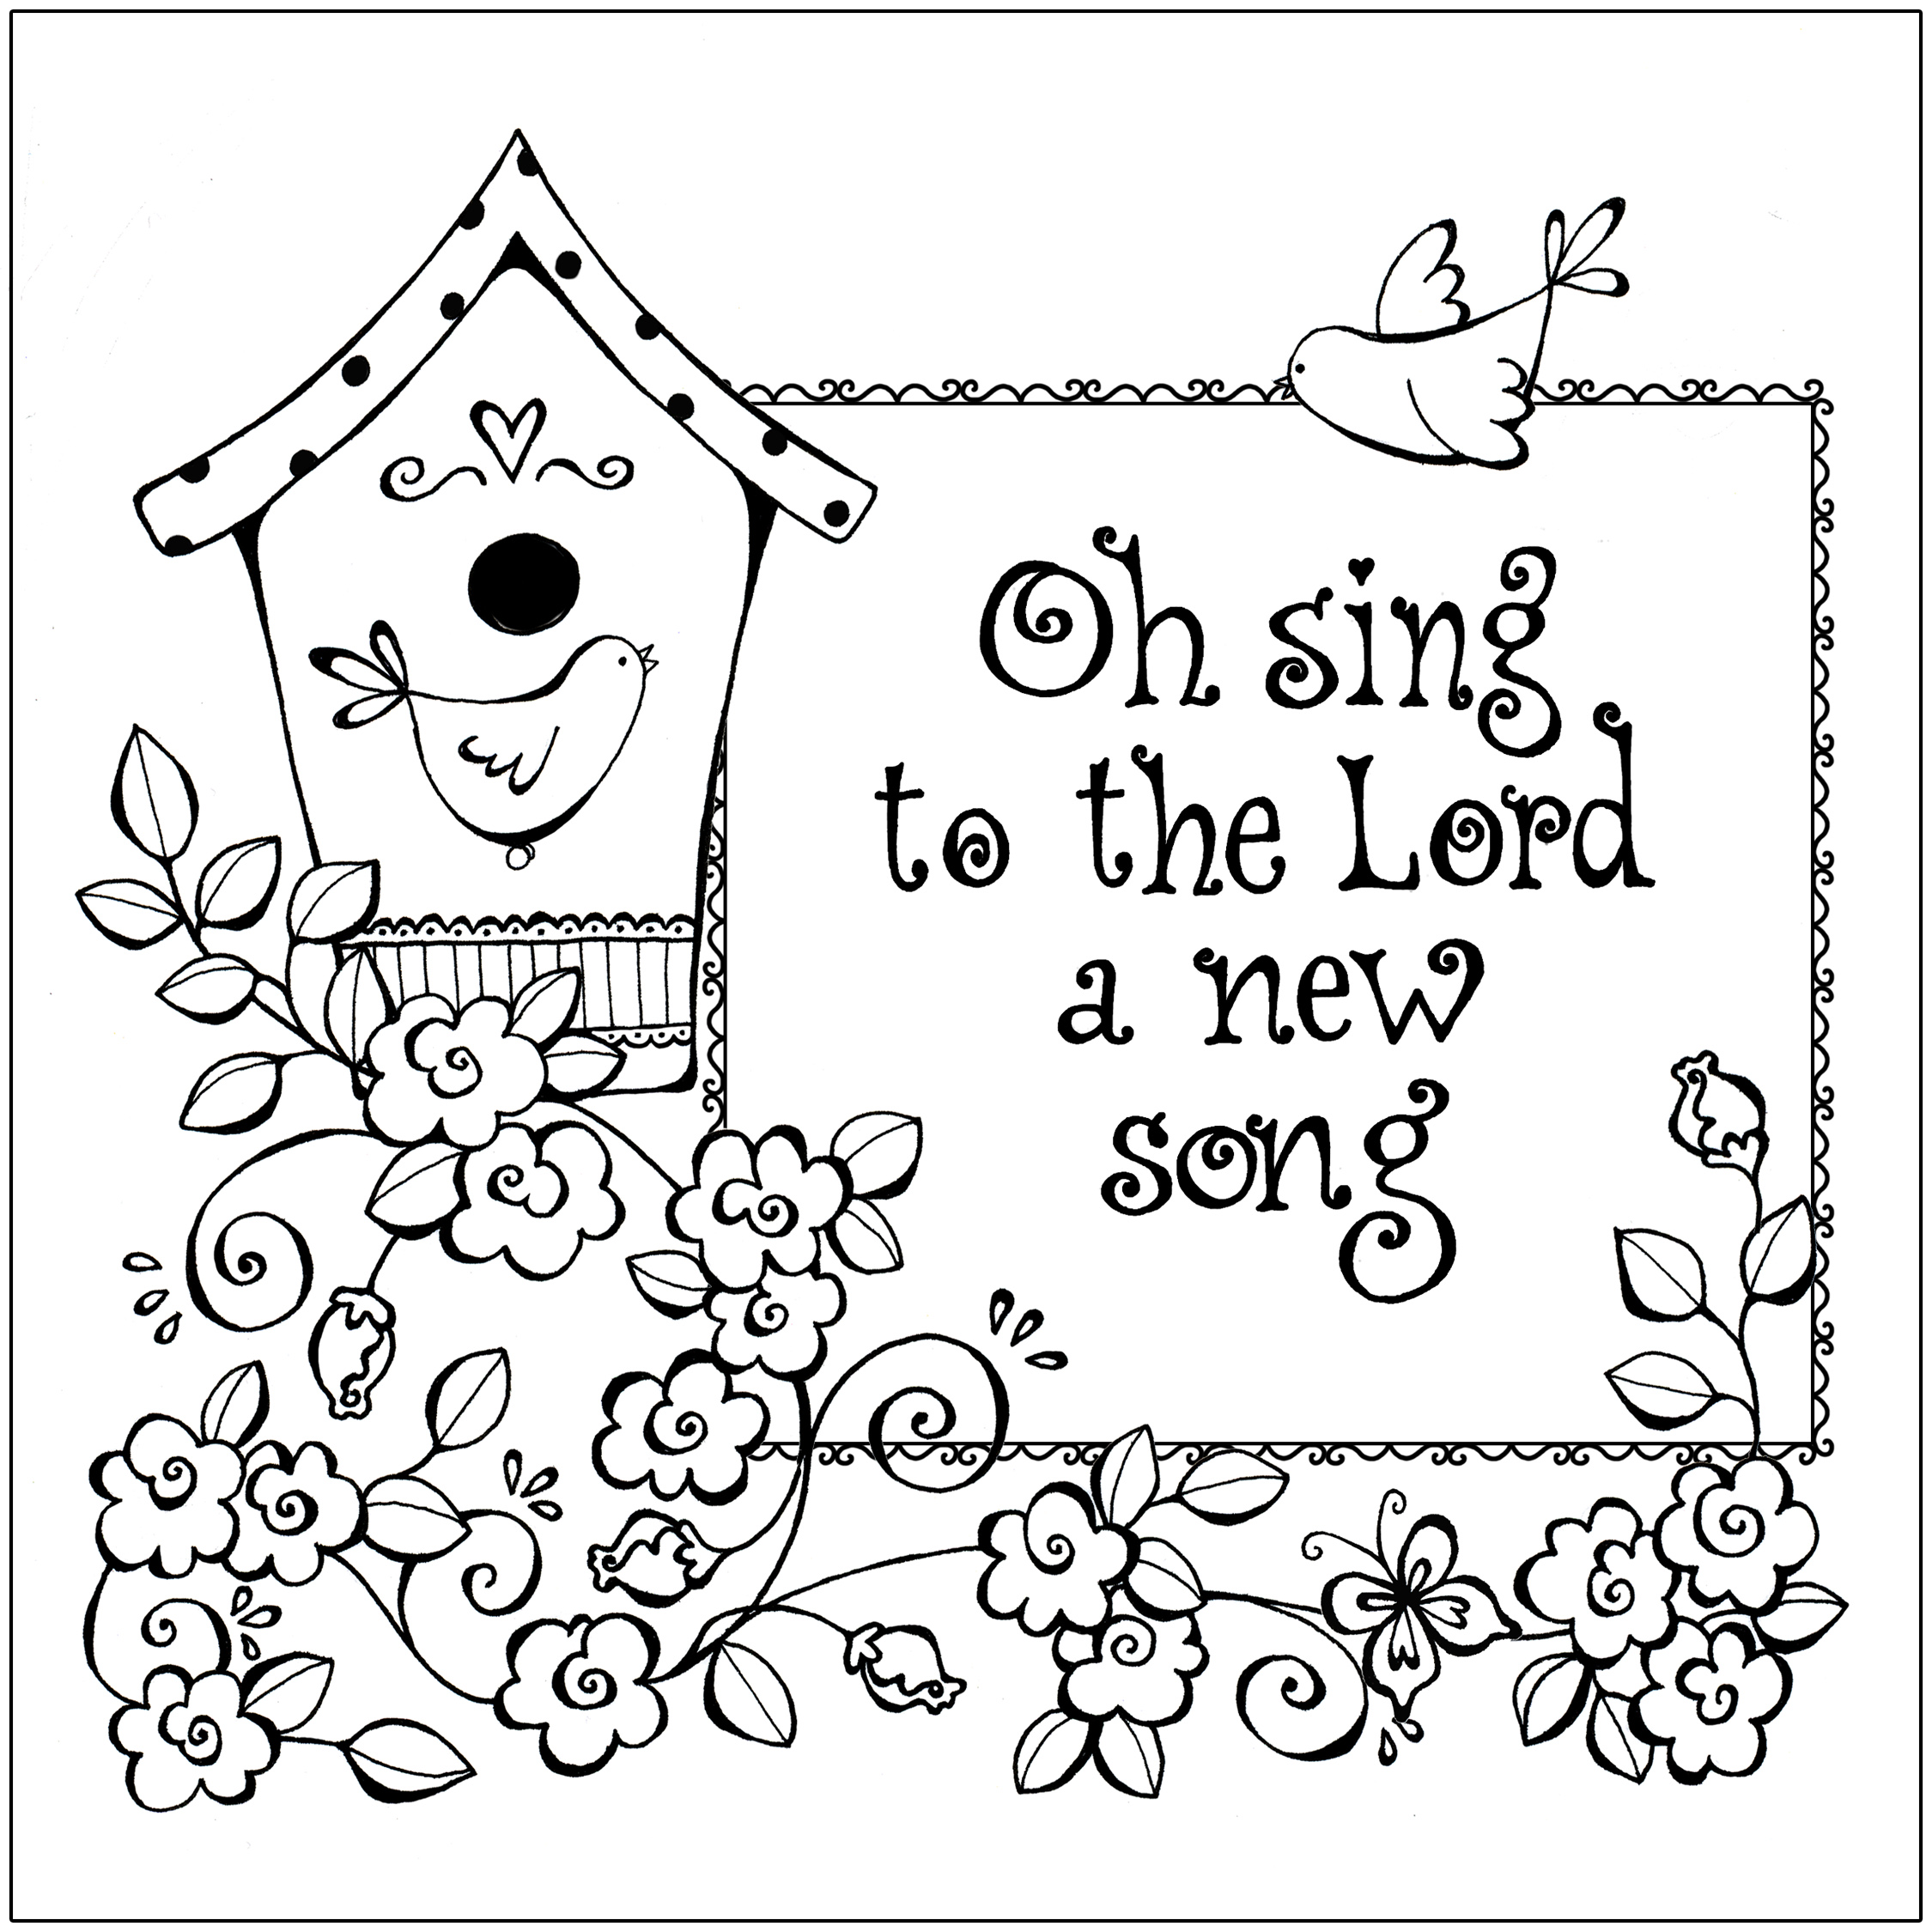 Christian coloring page printable images